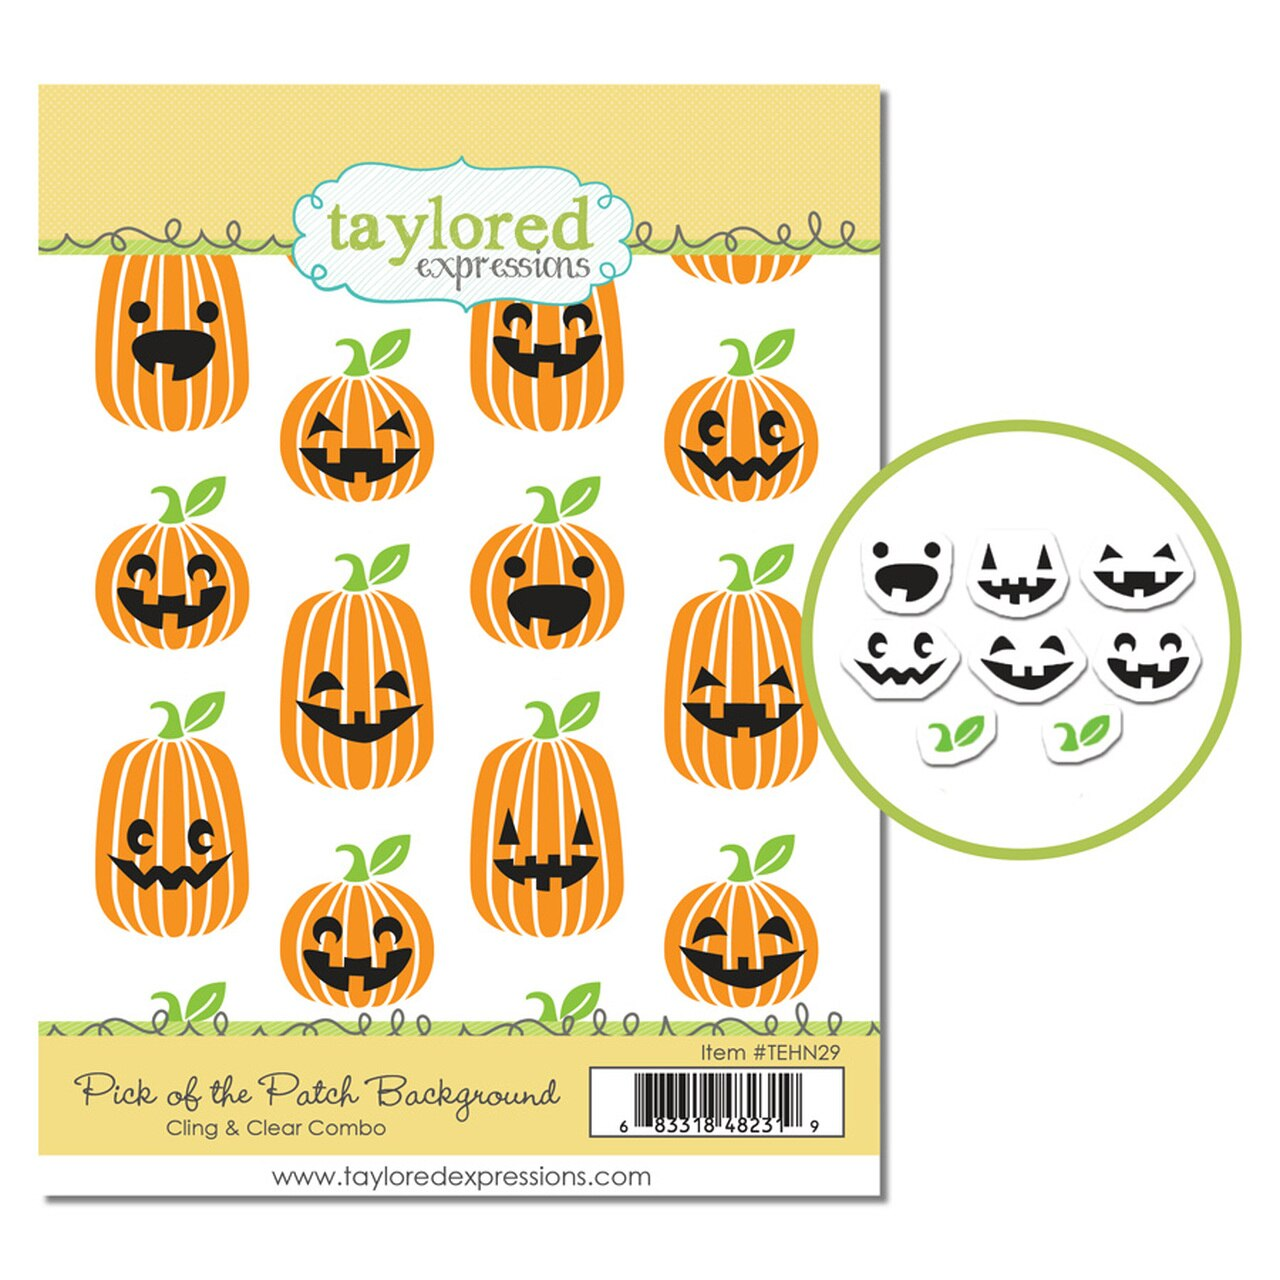 Cling & Clear Stamp Combo, Pick of the Patch